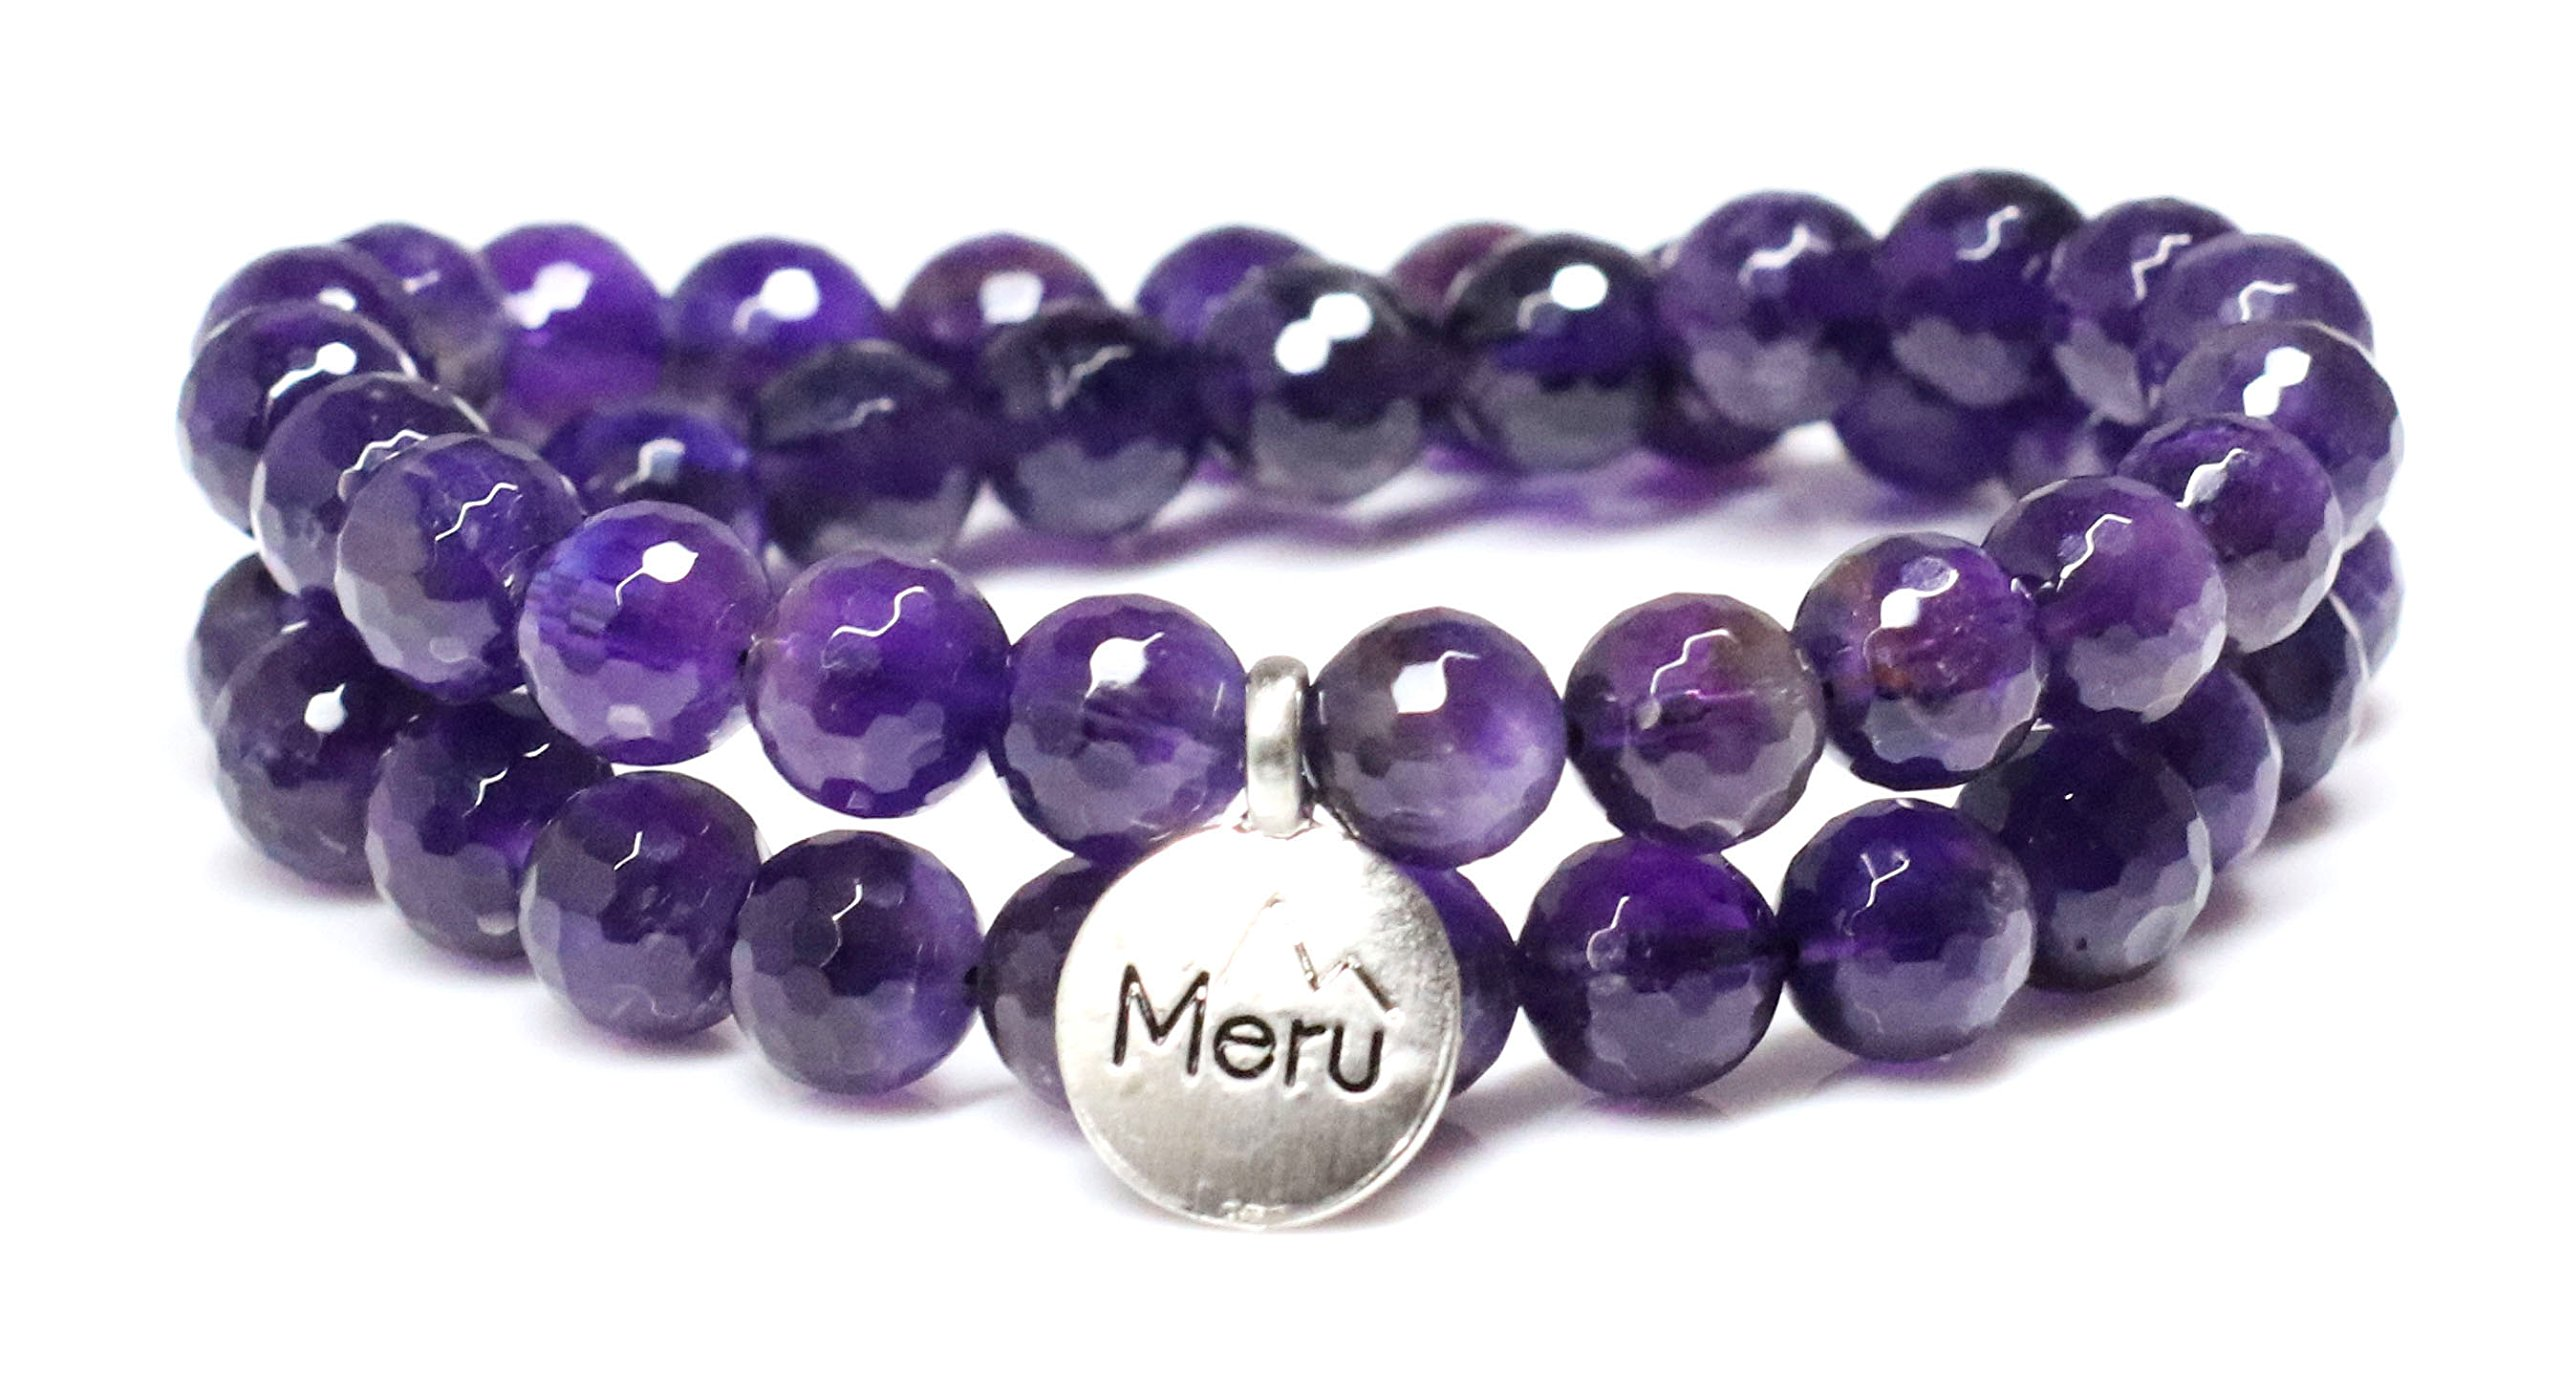 Medium Faceted Amethyst Wrap Bracelet for Women - Amethyst Bracelet - Amethyst Faceted Bracelet for Women